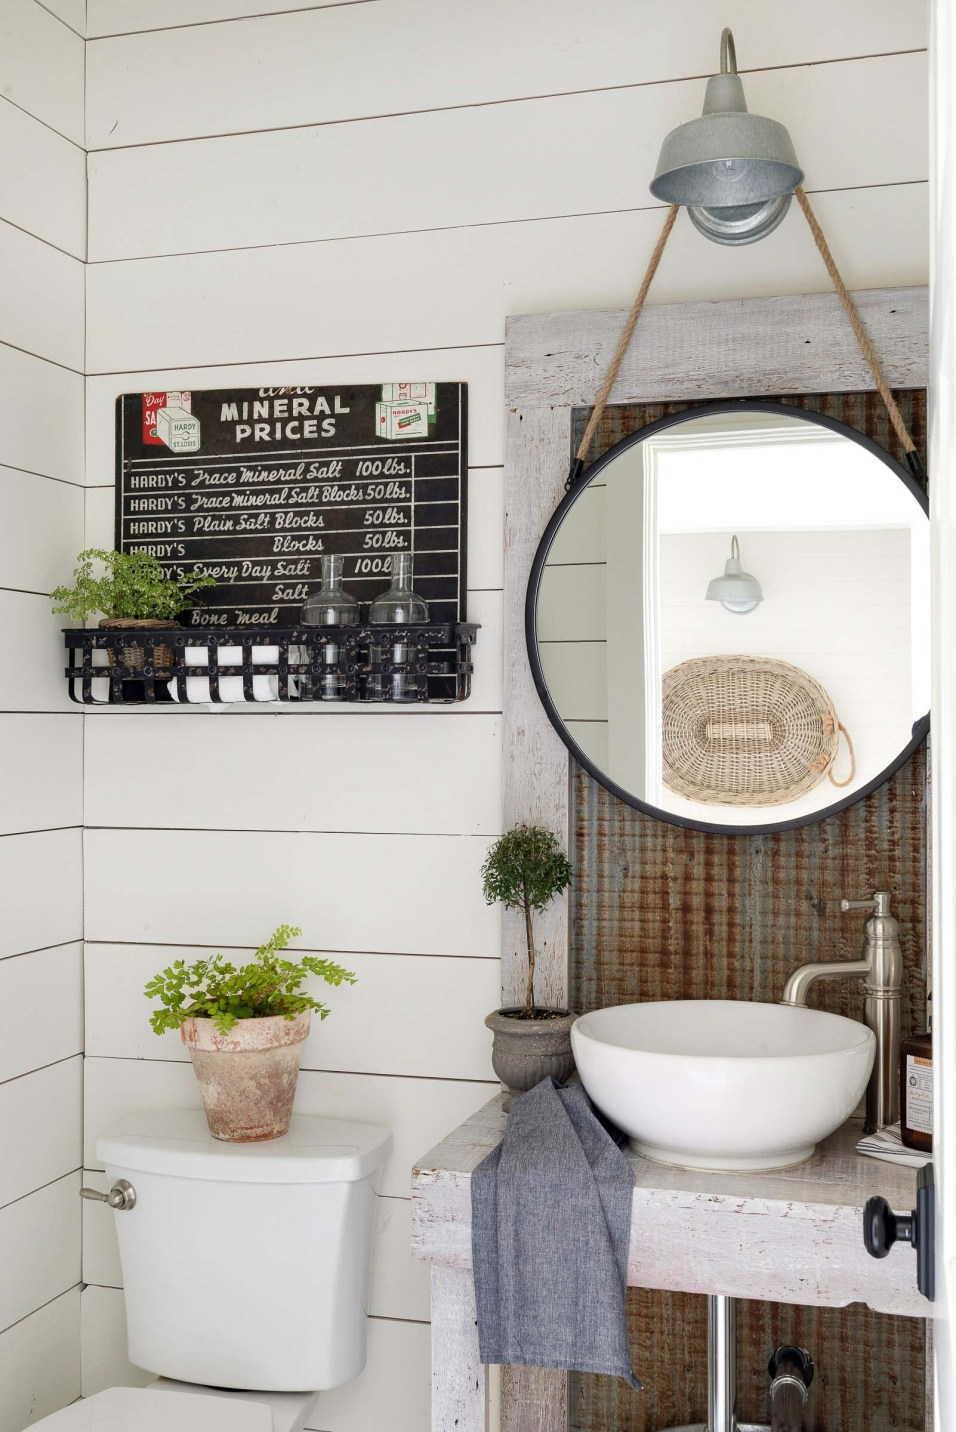 Powder Room with Salvaged Decor